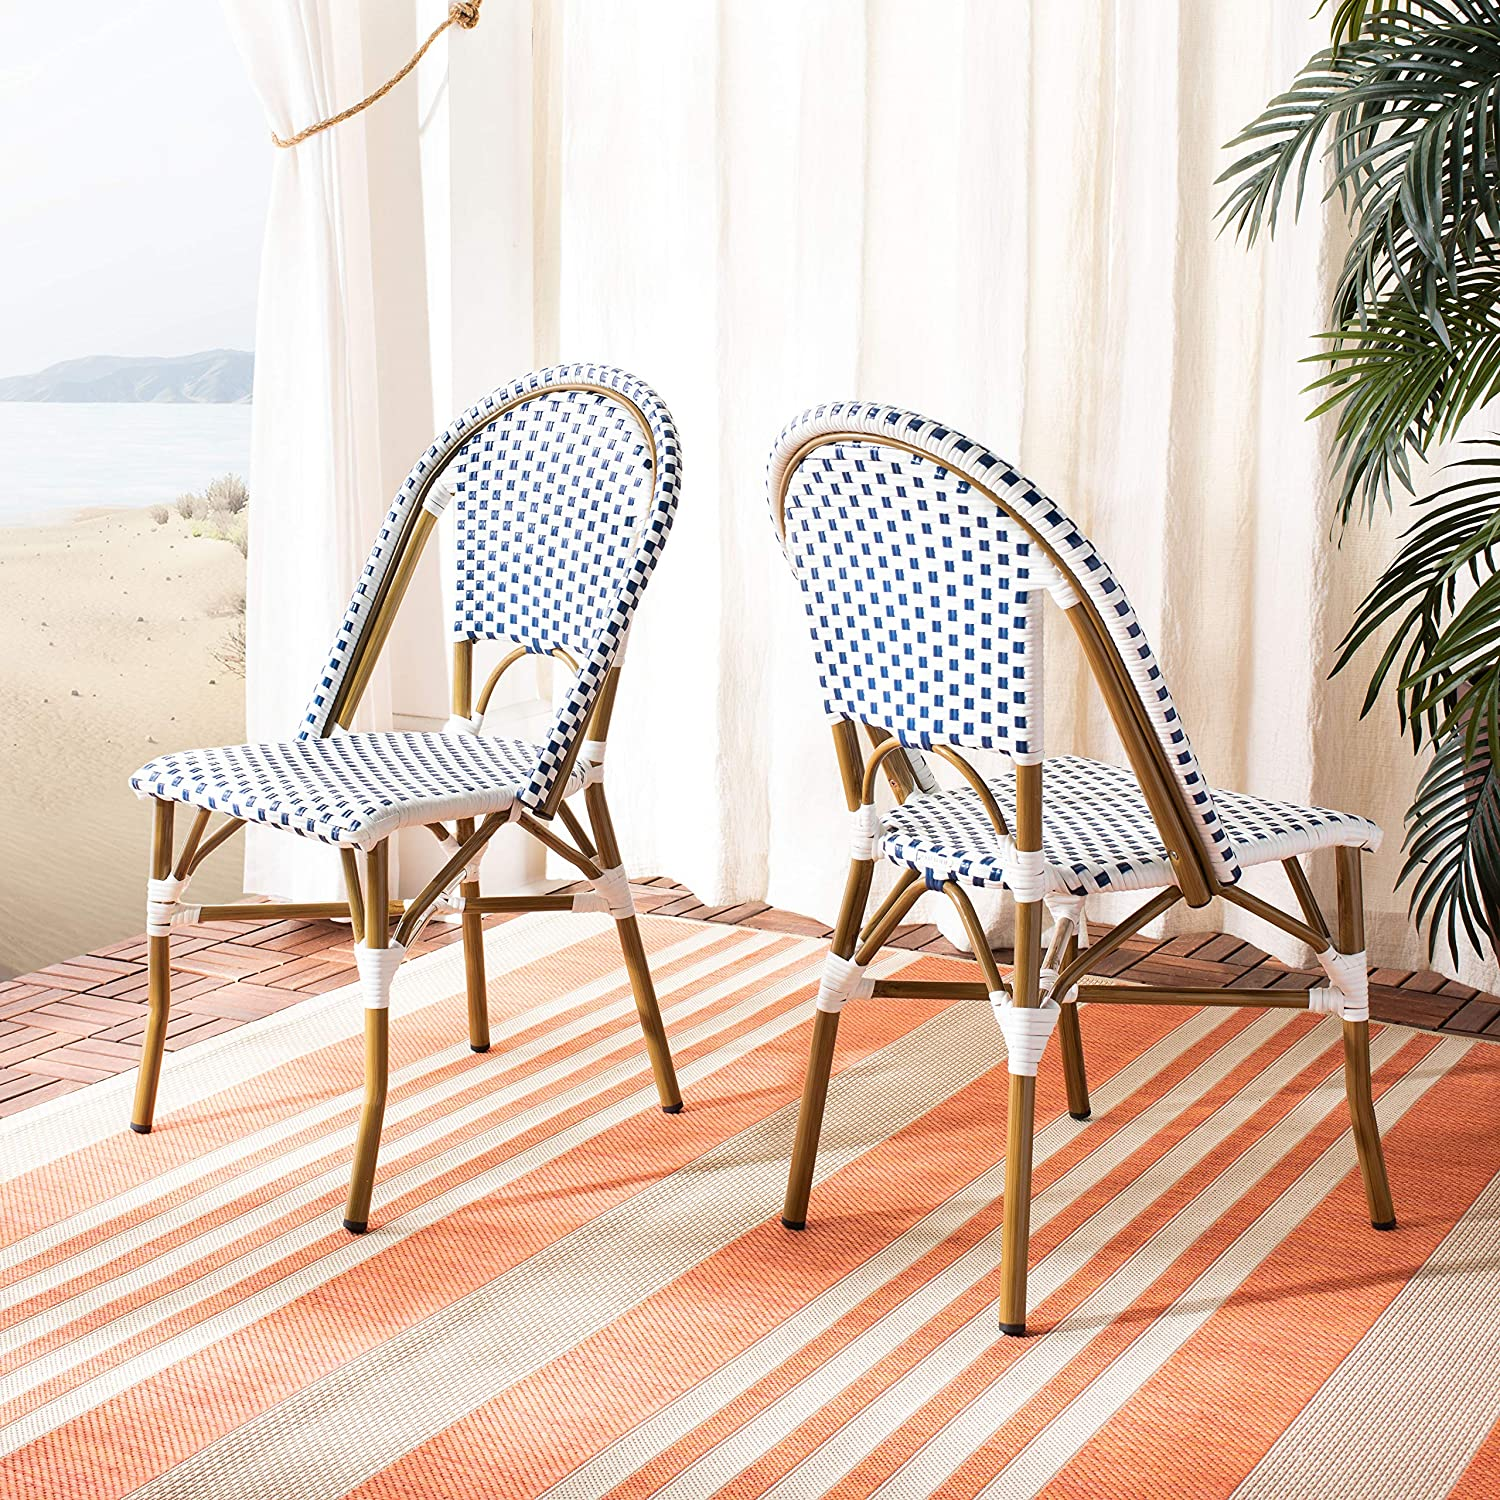 1af1b69ba1 Amazon.com: Safavieh Home Collection Salcha Blue and White Indoor/Outdoor  Stacking Side Chair (Set of 2): Kitchen & Dining